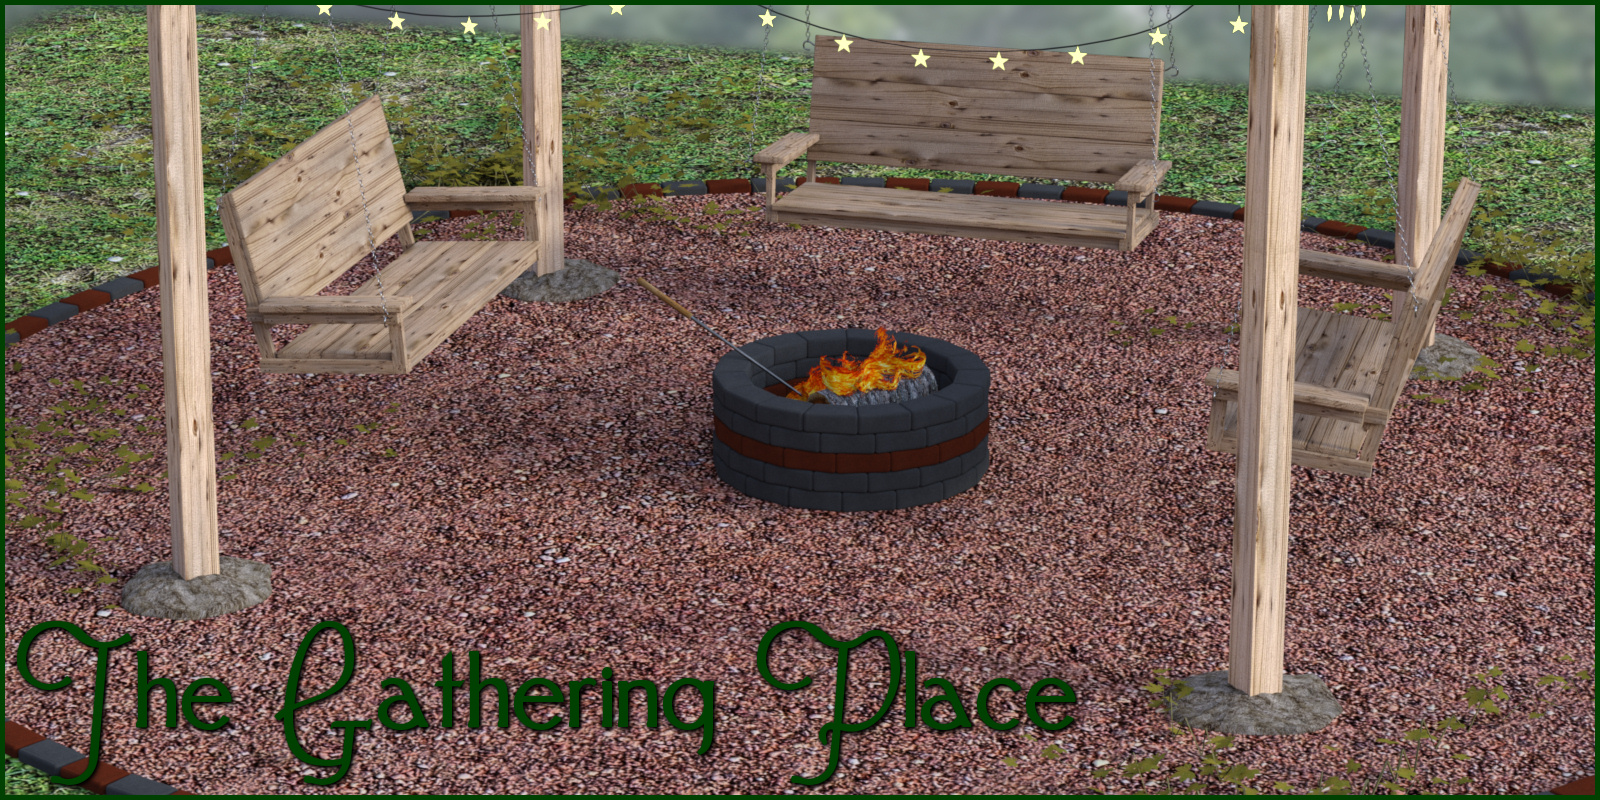 The Gathering Place for Daz